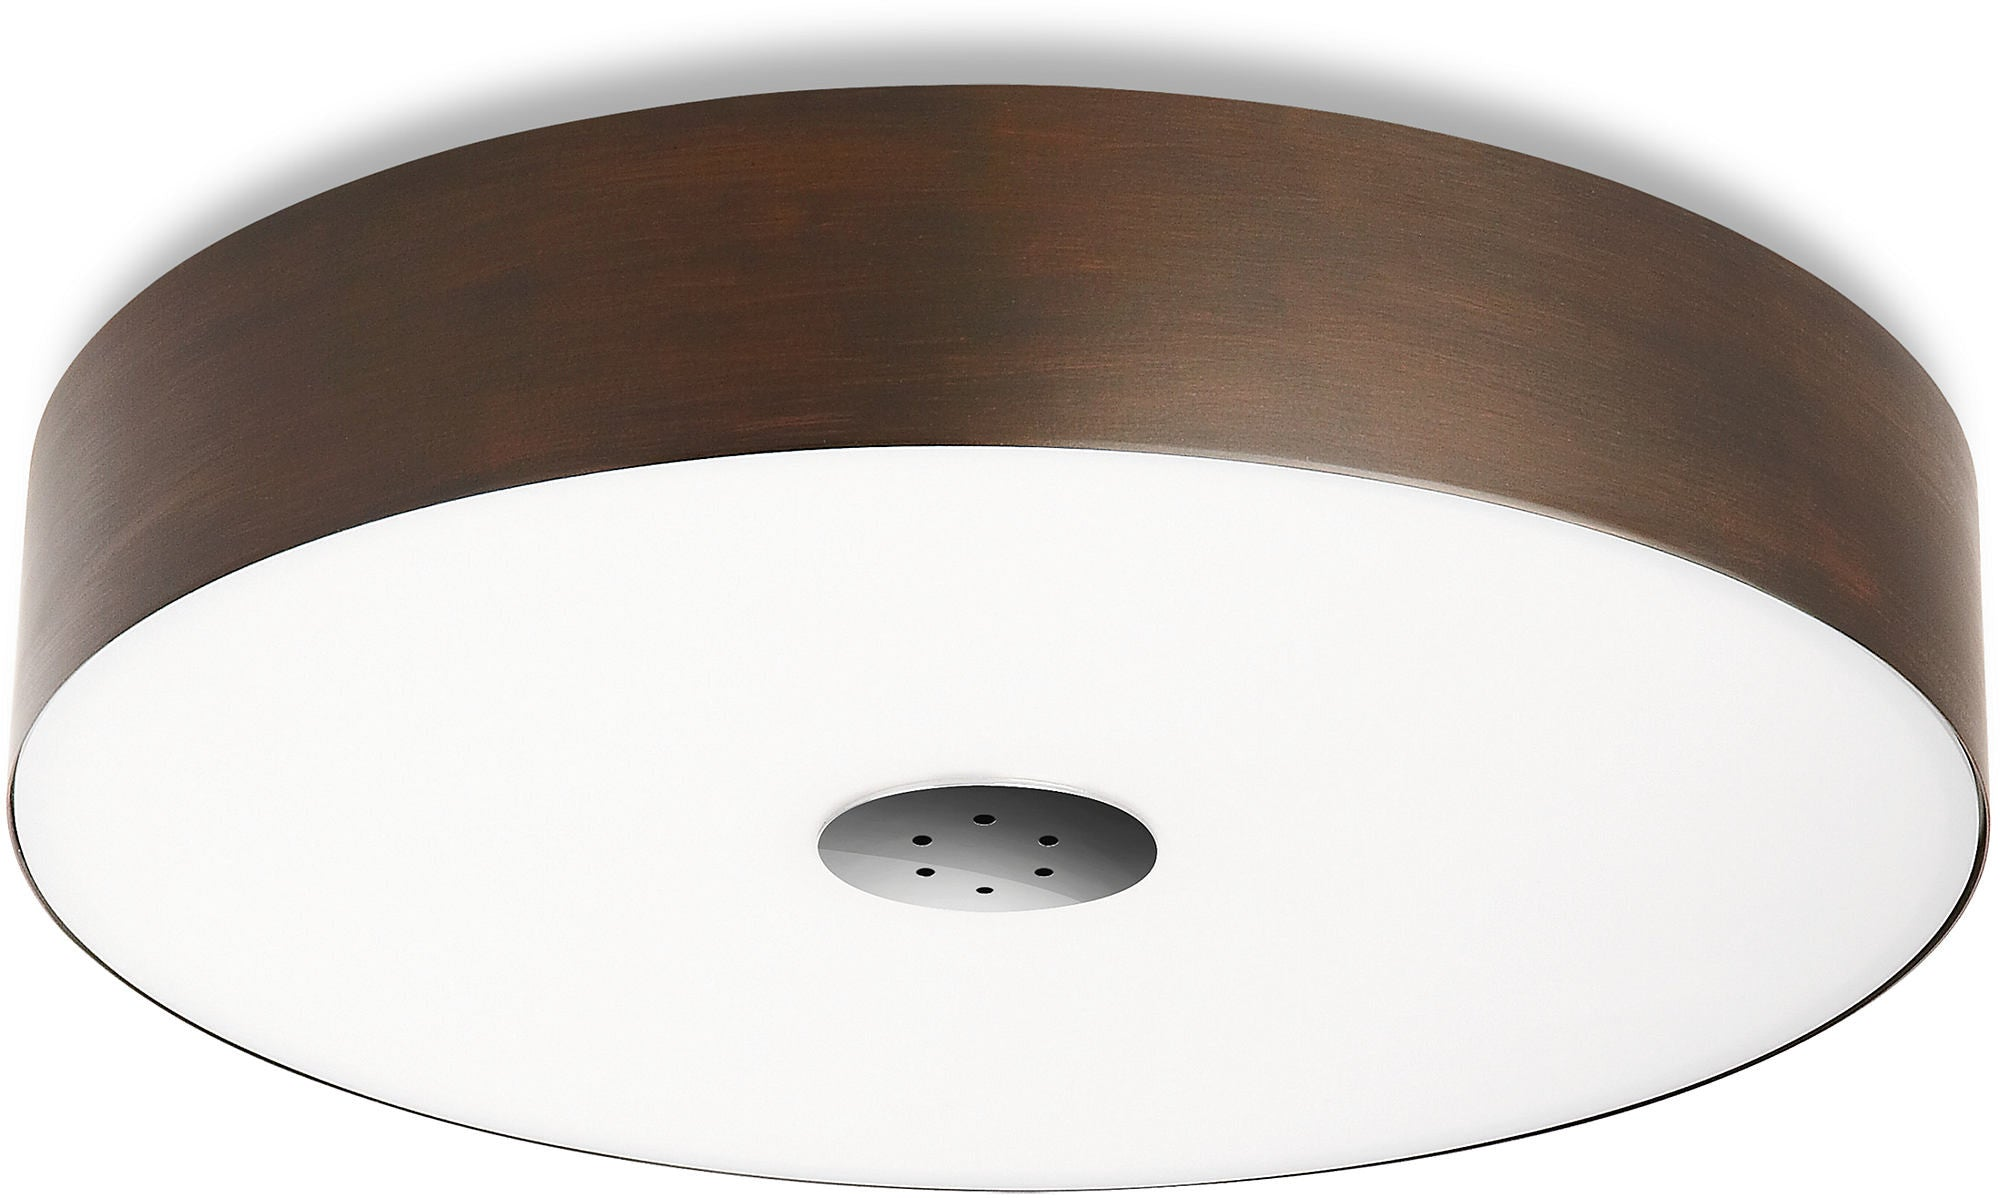 Philips ecomoods ceiling light 80 energy saving philips light philips ecomoods ceiling light aloadofball Choice Image